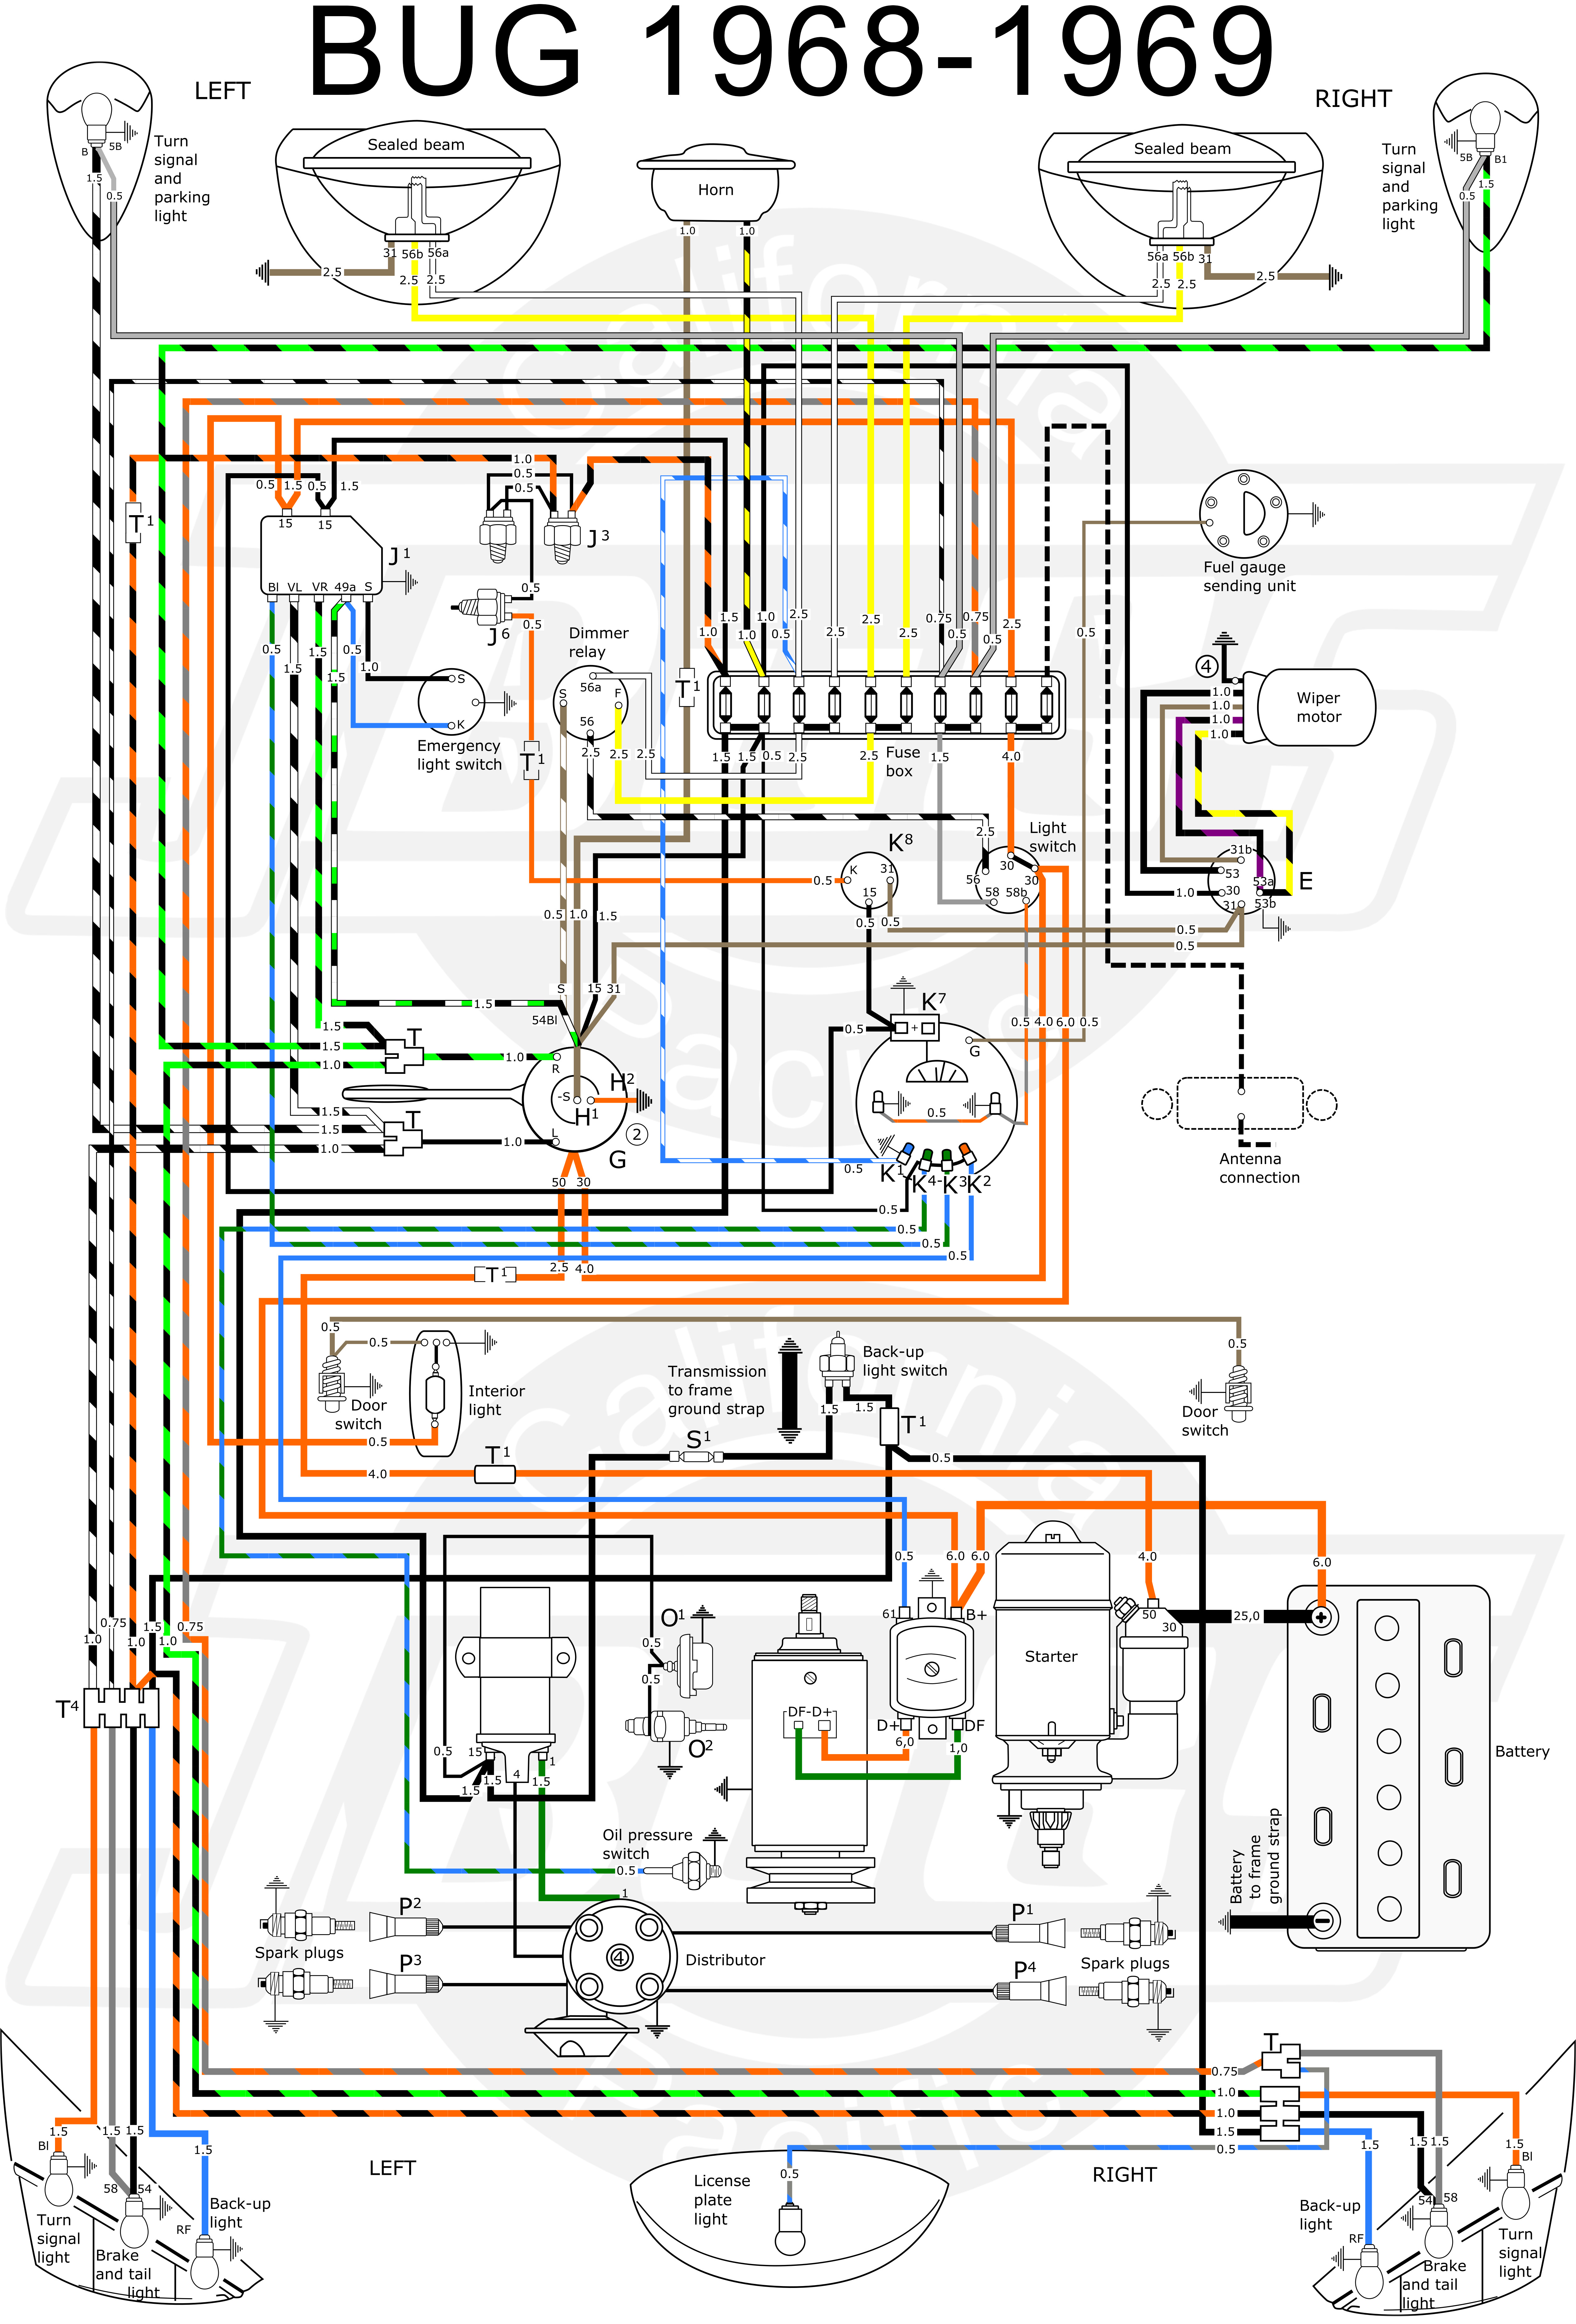 western plow wiring diagram ford vw tech article 1968 69 wiring diagram western plow wiring diagram 2003 ram #11